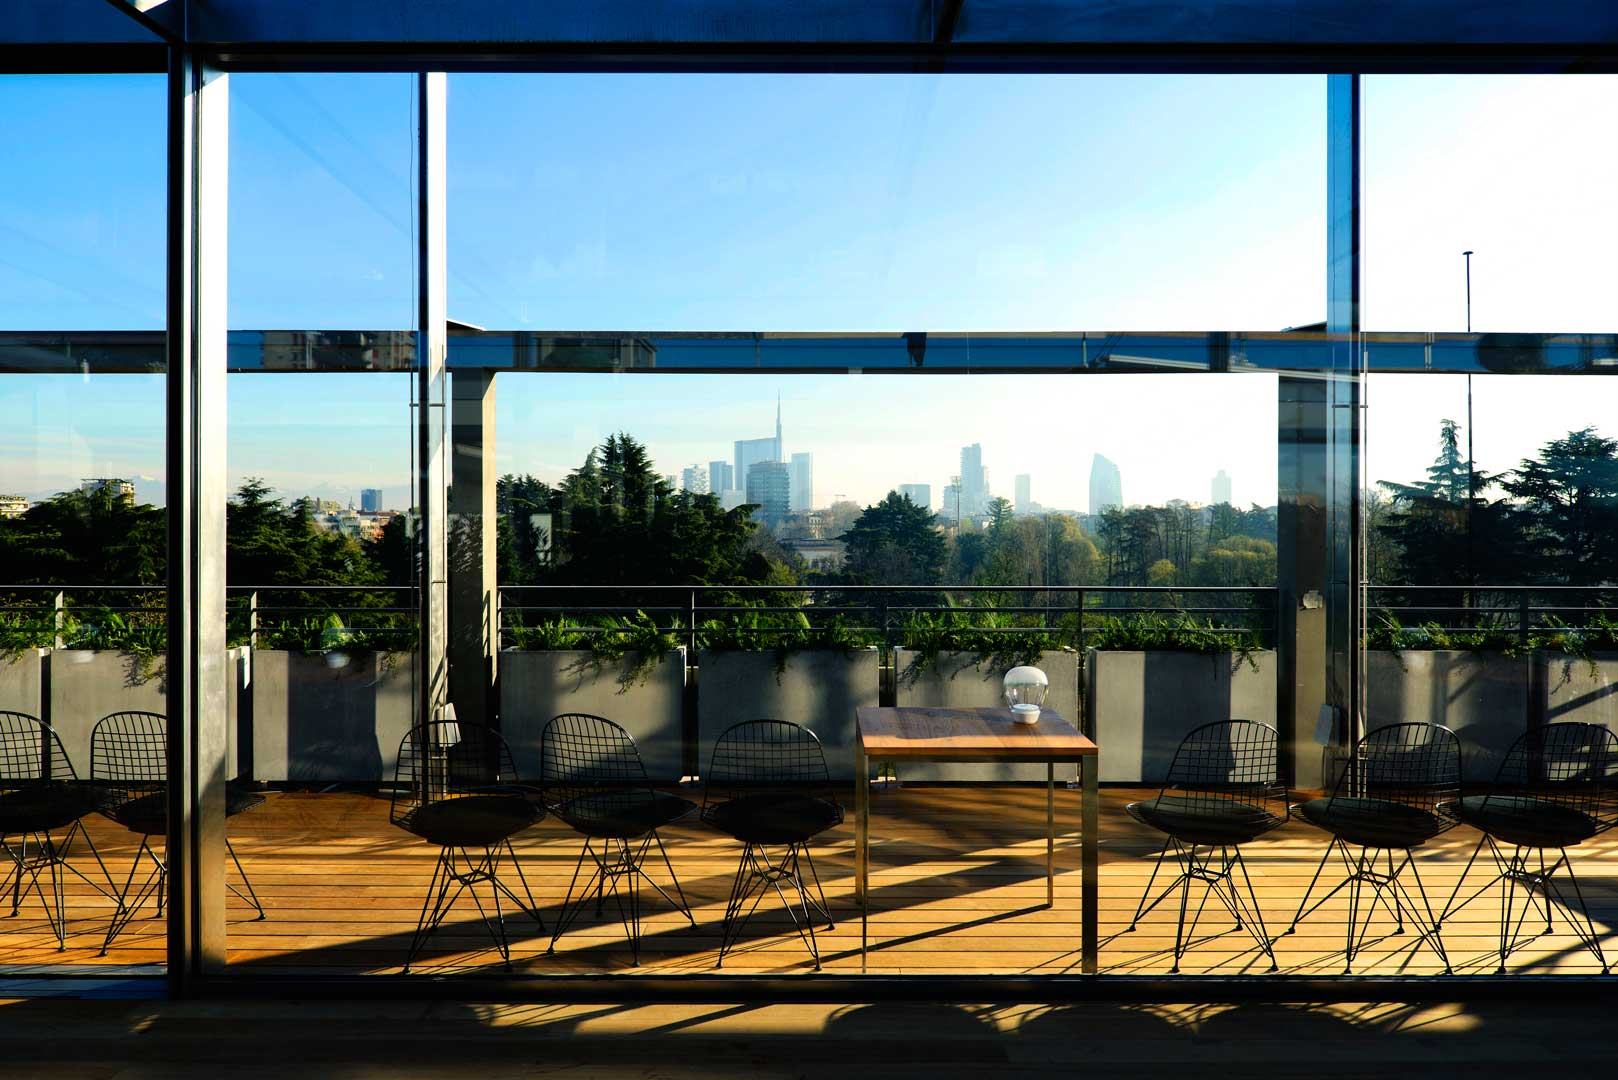 Milan\'s top 5 fascinating rooftops | Flawless Milano